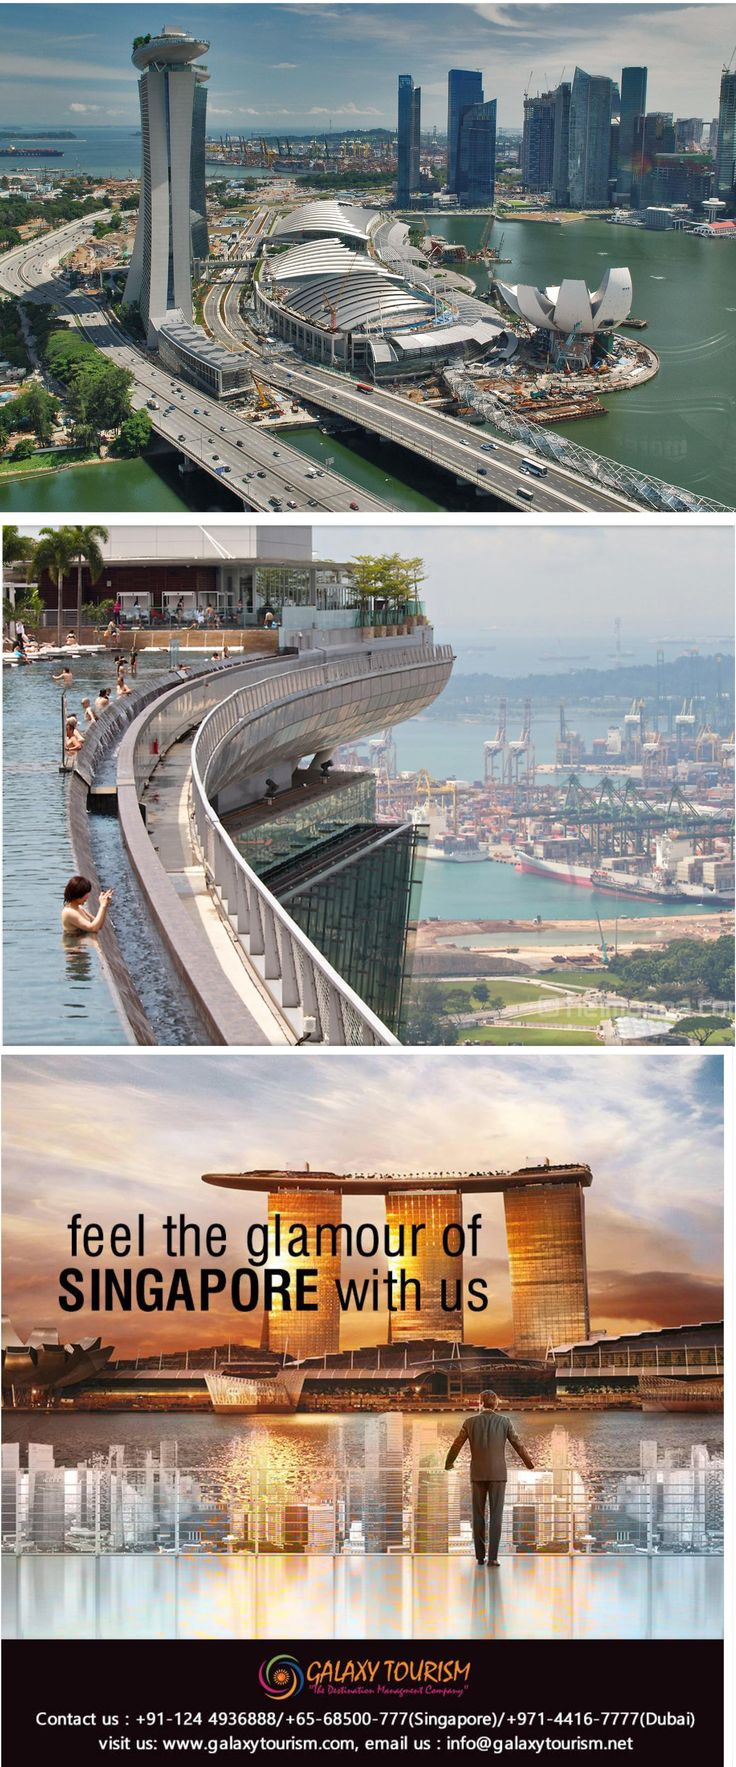 Singapore Marina Bay Sands Skypark is very Popular attraction for travelers. Galaxy Tourism giving opportunity to visit Skypark at very discounted rate. Book Now.... http://goo.gl/4jbaVb